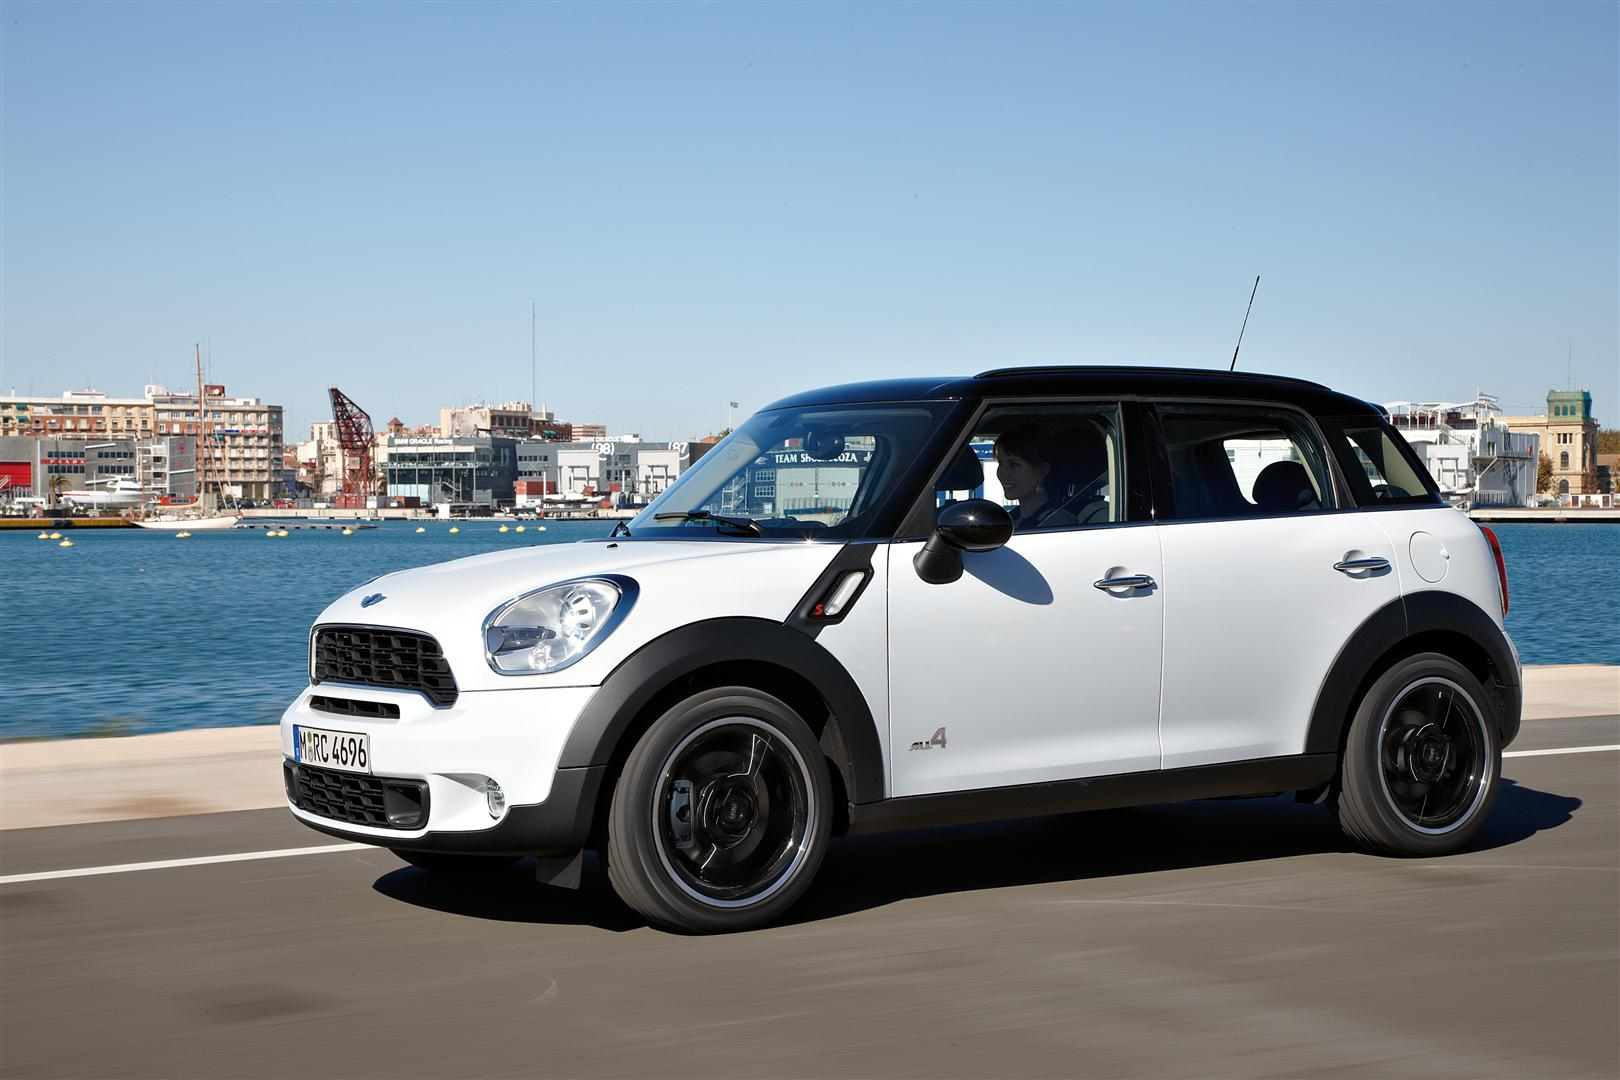 THE LATEST LAUNCH OF SOUTH AFRICAN MINI COOPER THIS YEAR 2019 3